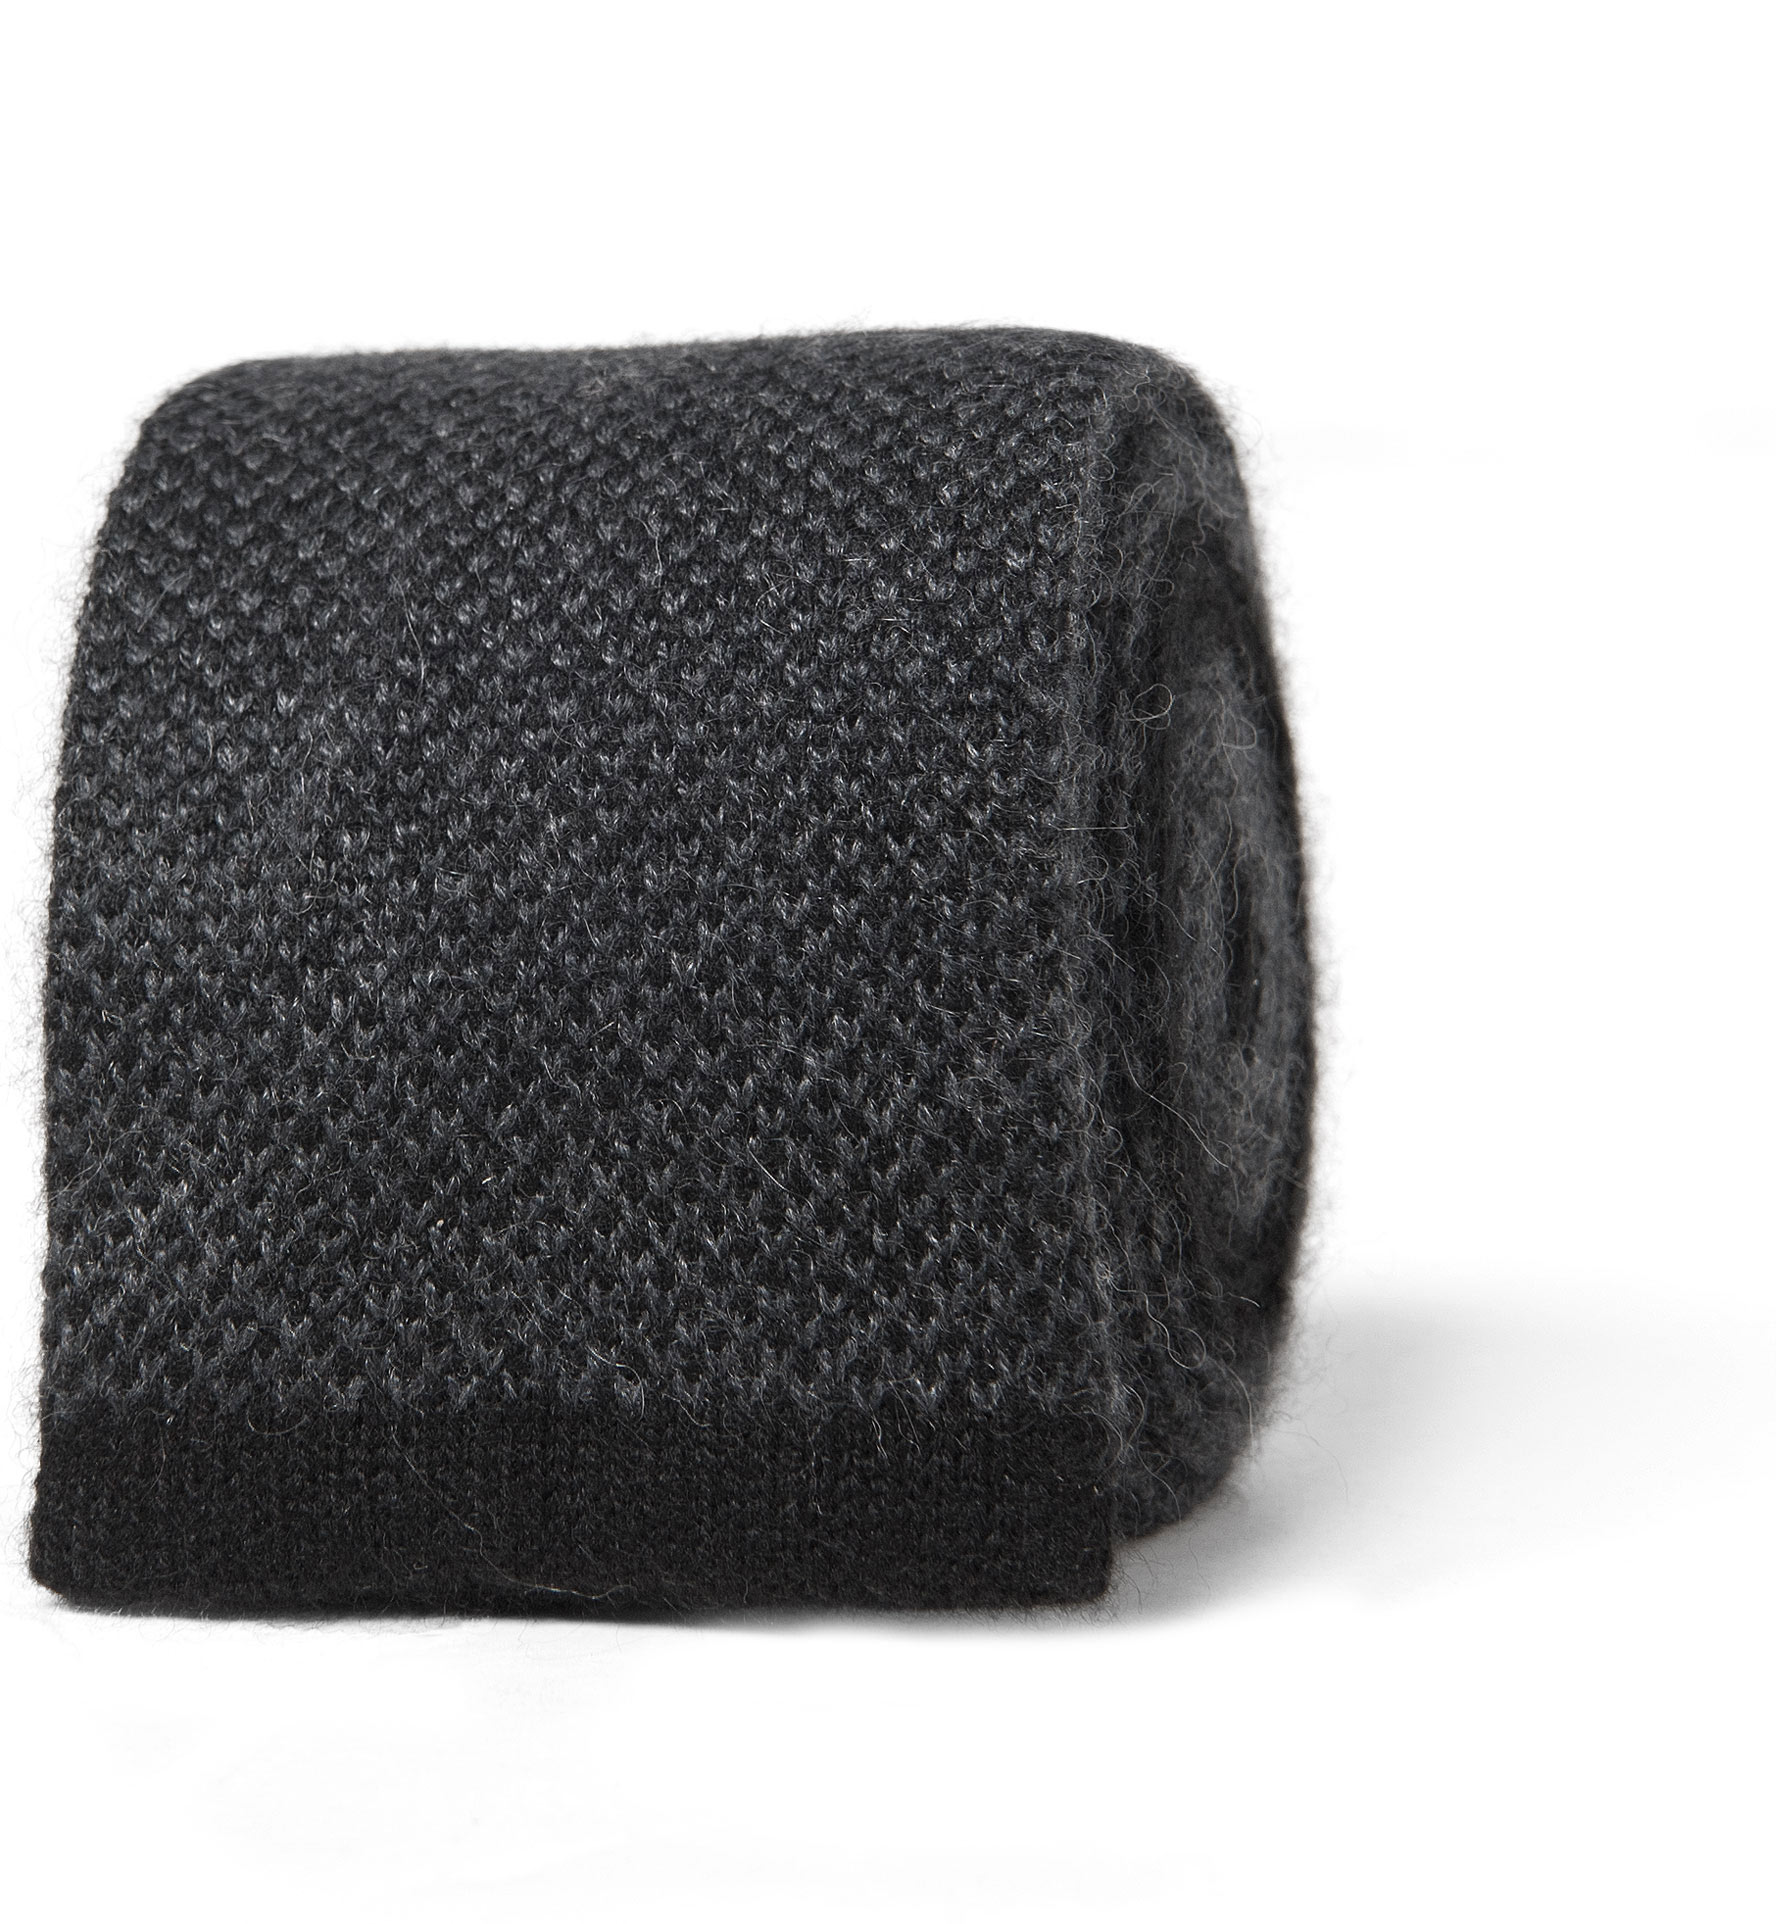 Zoom Image of Charcoal Cashmere Knit Tie